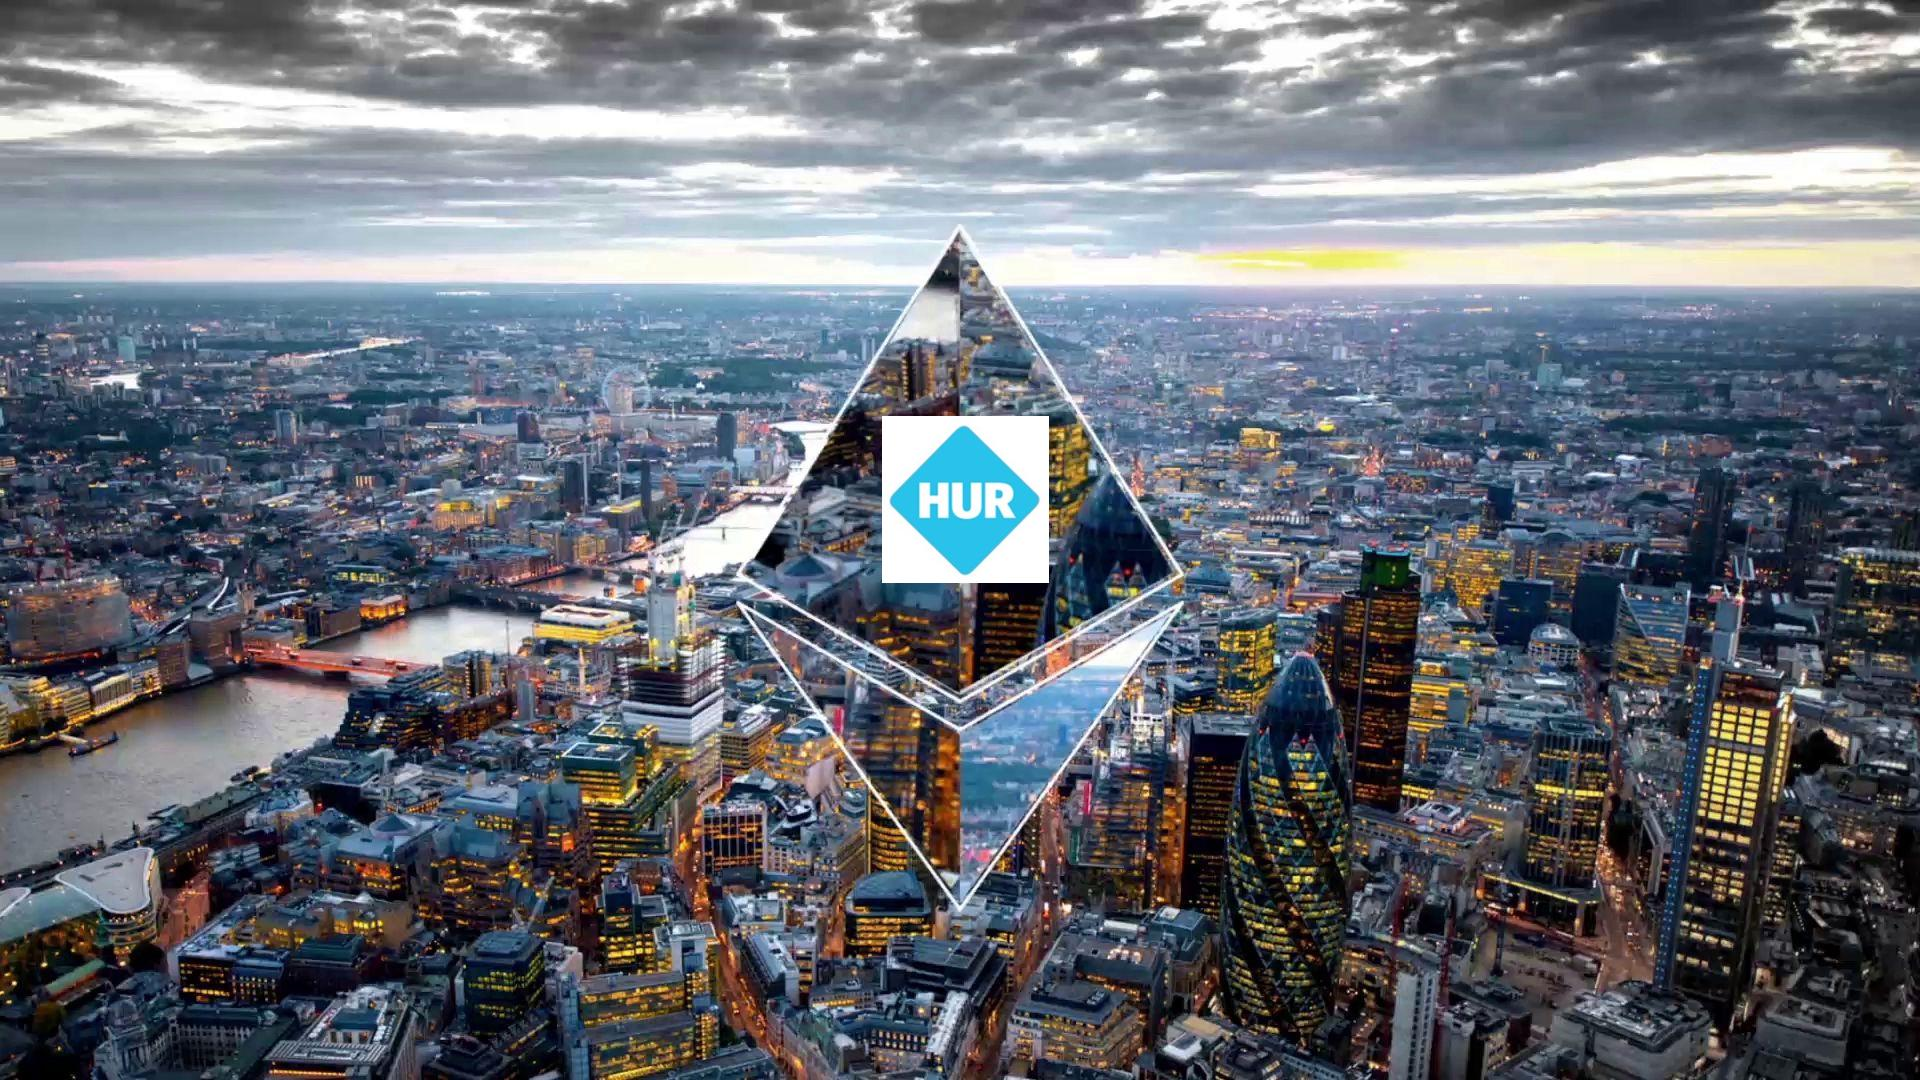 Hurify Poised to Disrupt IOT With Coming ICO